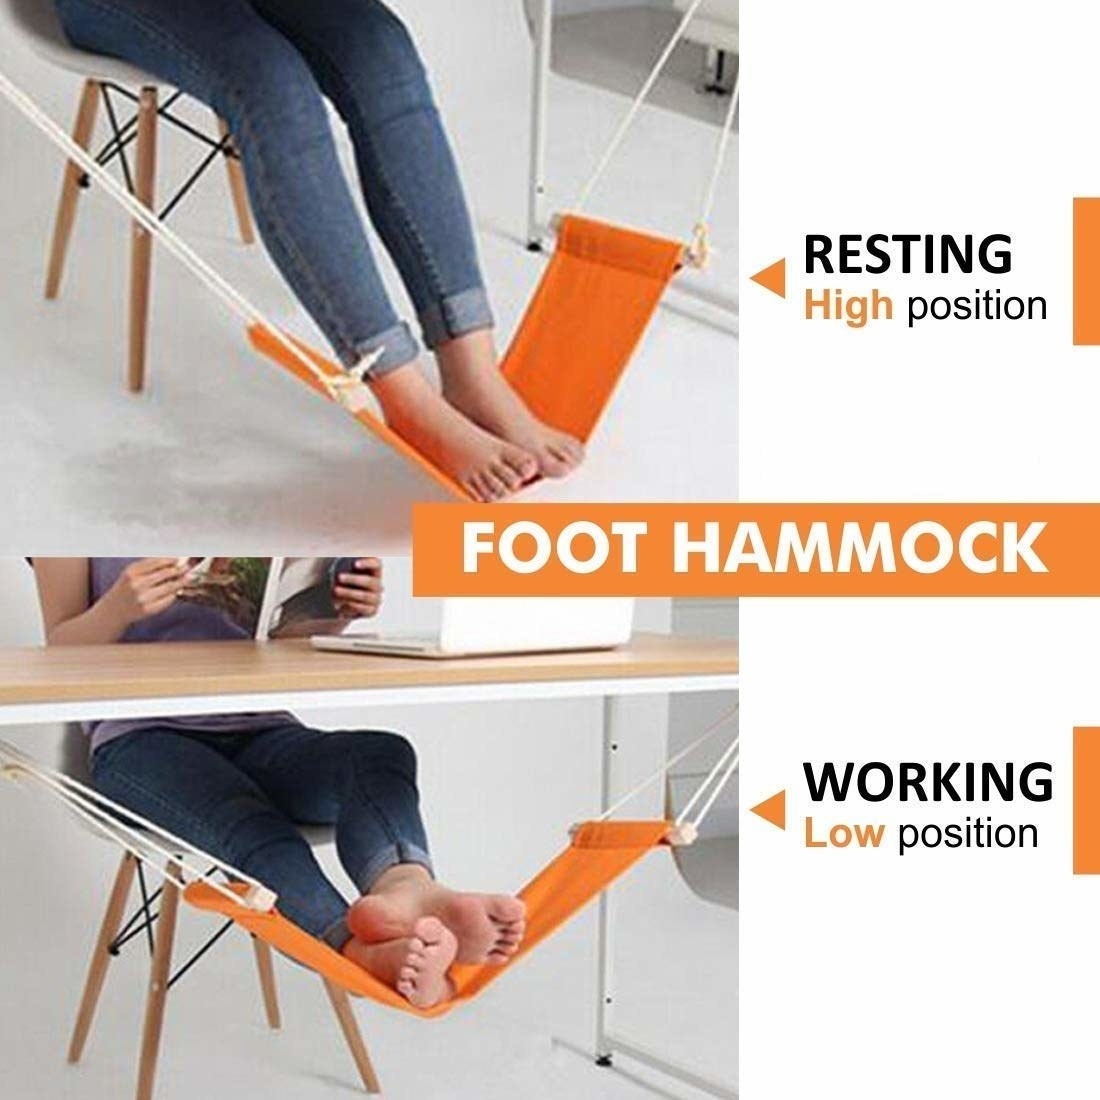 A collage of a person resting their feet on a foot hammock under a table